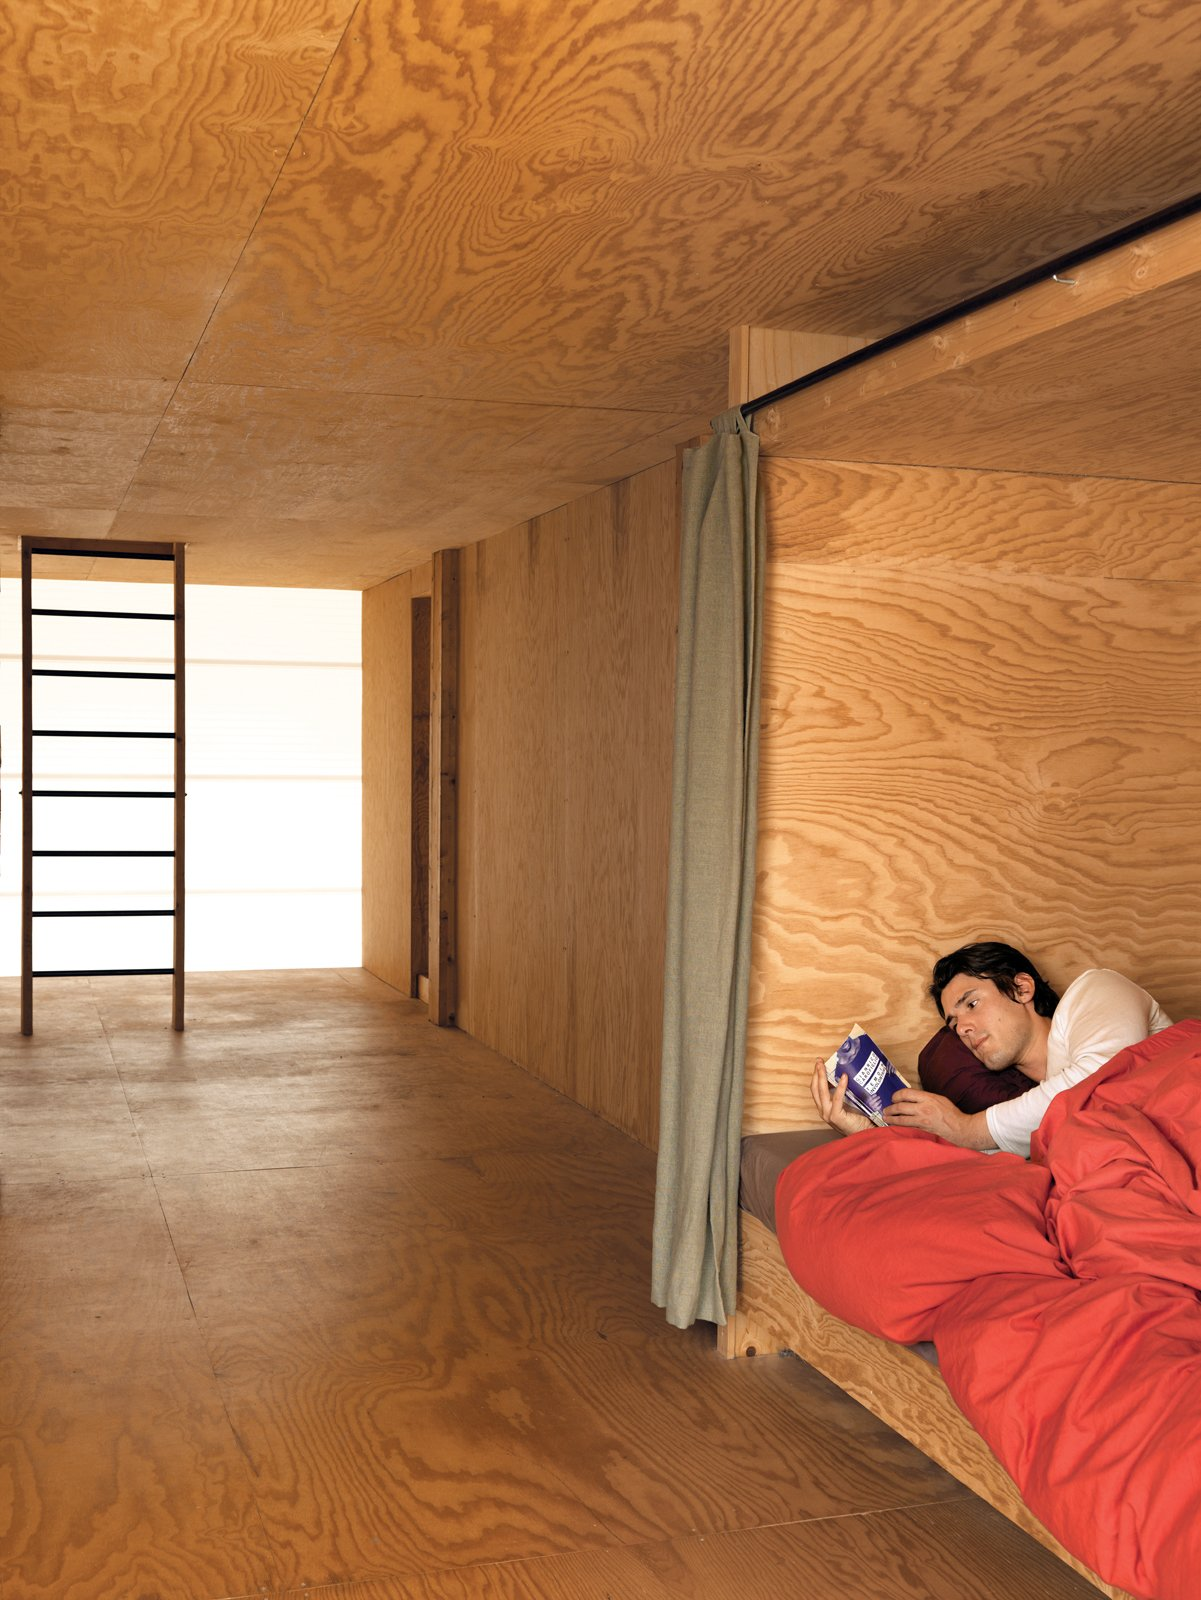 Bedroom and Bed The second floor houses three lits bretons, boxlike compartments where the curtains can be drawn to close sleepers off from the world. Inside, each has a built-in shelf   for personal belongings and a favorite read.  Photo 10 of 11 in Modern Wooden A-Frame Retreat in France